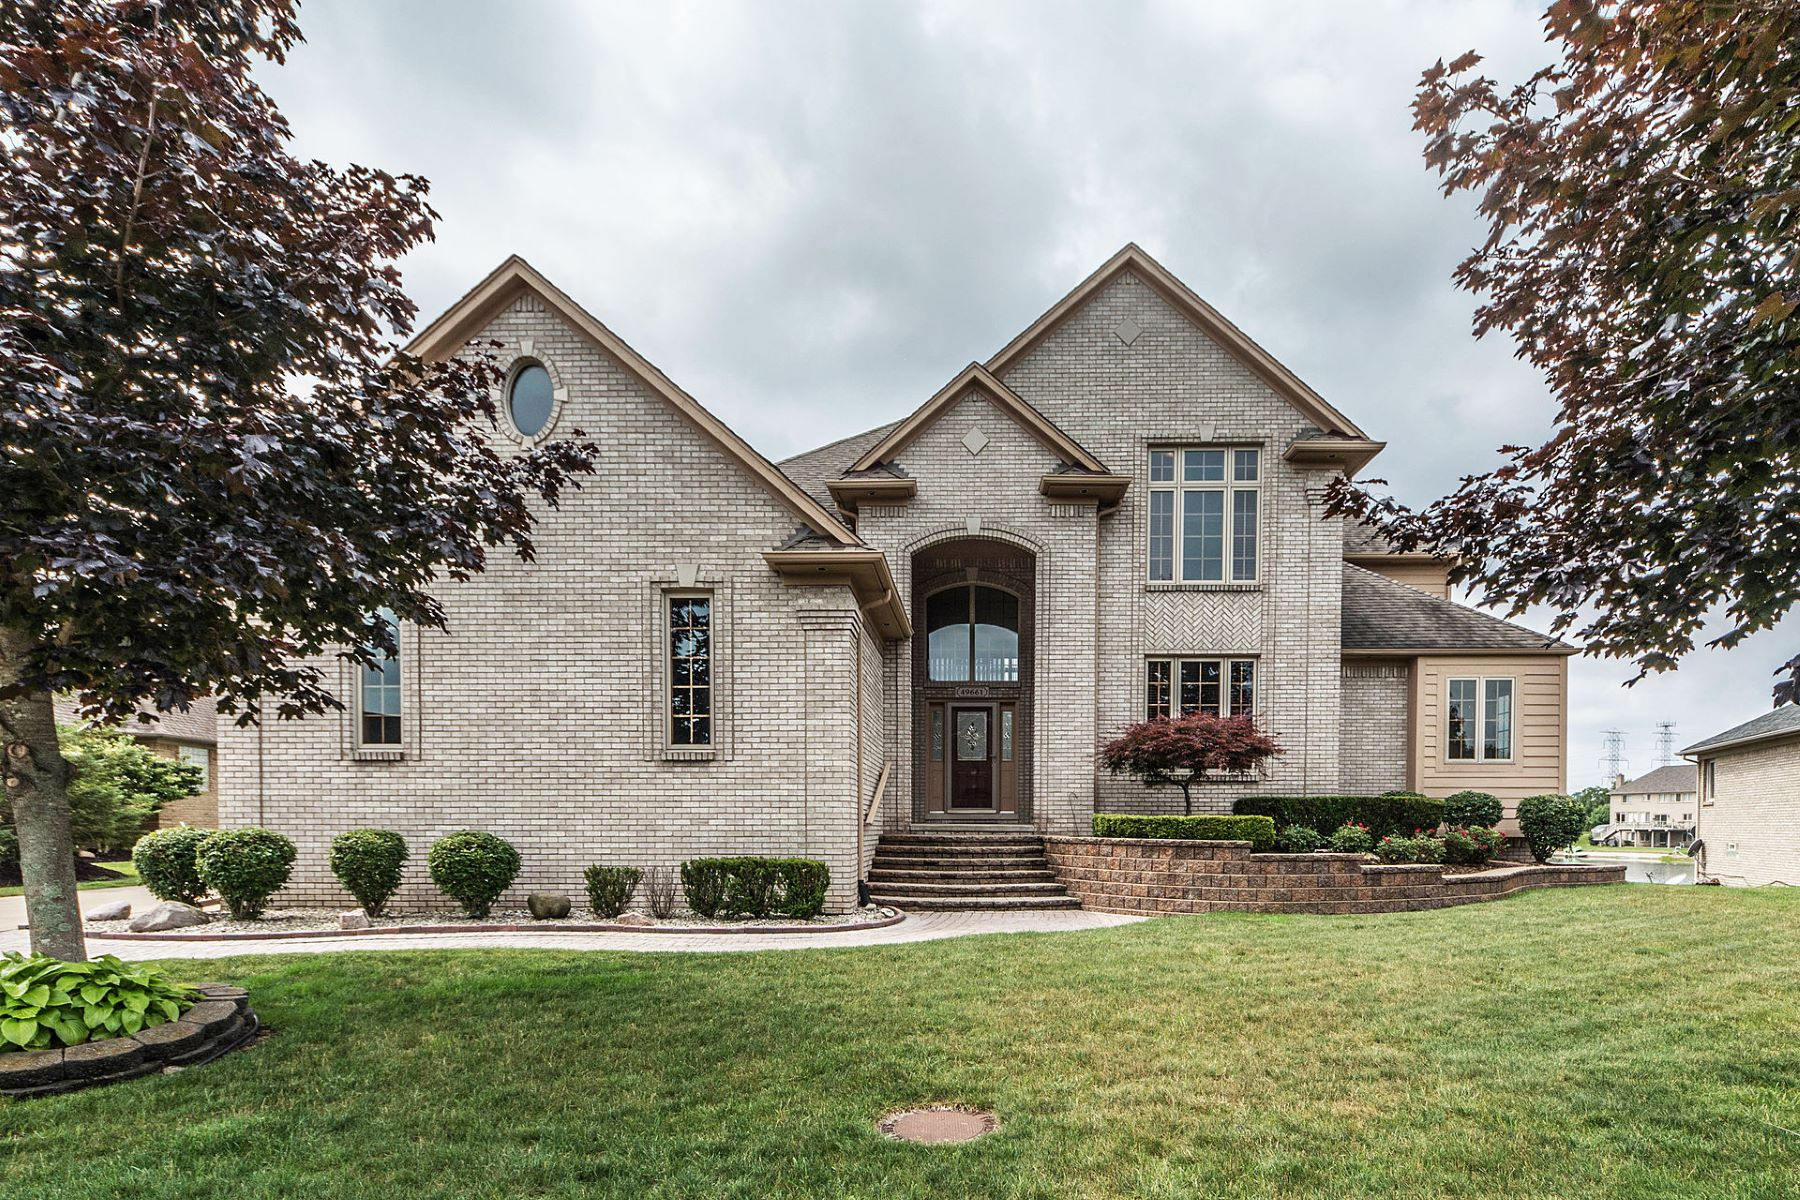 Single Family Home for Sale at Shelby Township 49661 Lakebridge Drive Shelby Township, Michigan, 48315 United States